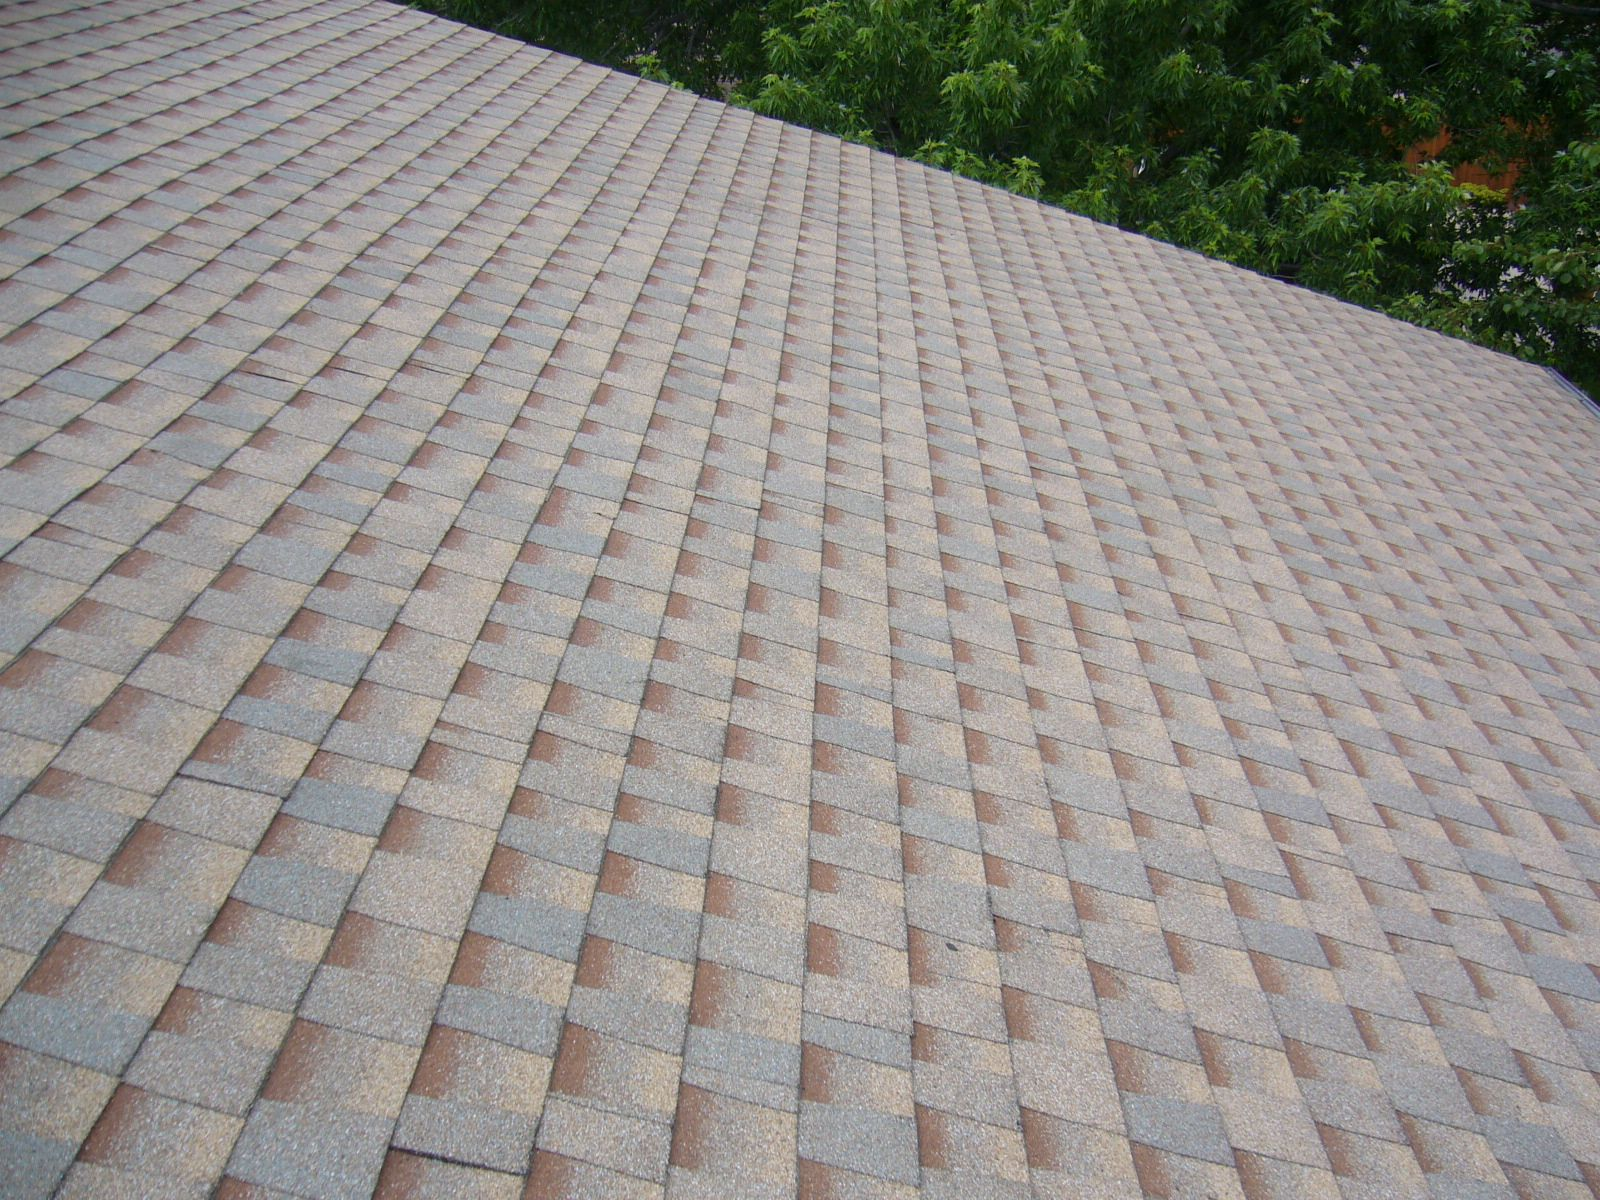 Gaf Timberline Shingles In Copper Canyon Roof Styles Timberline Shingles Landscape Curbing